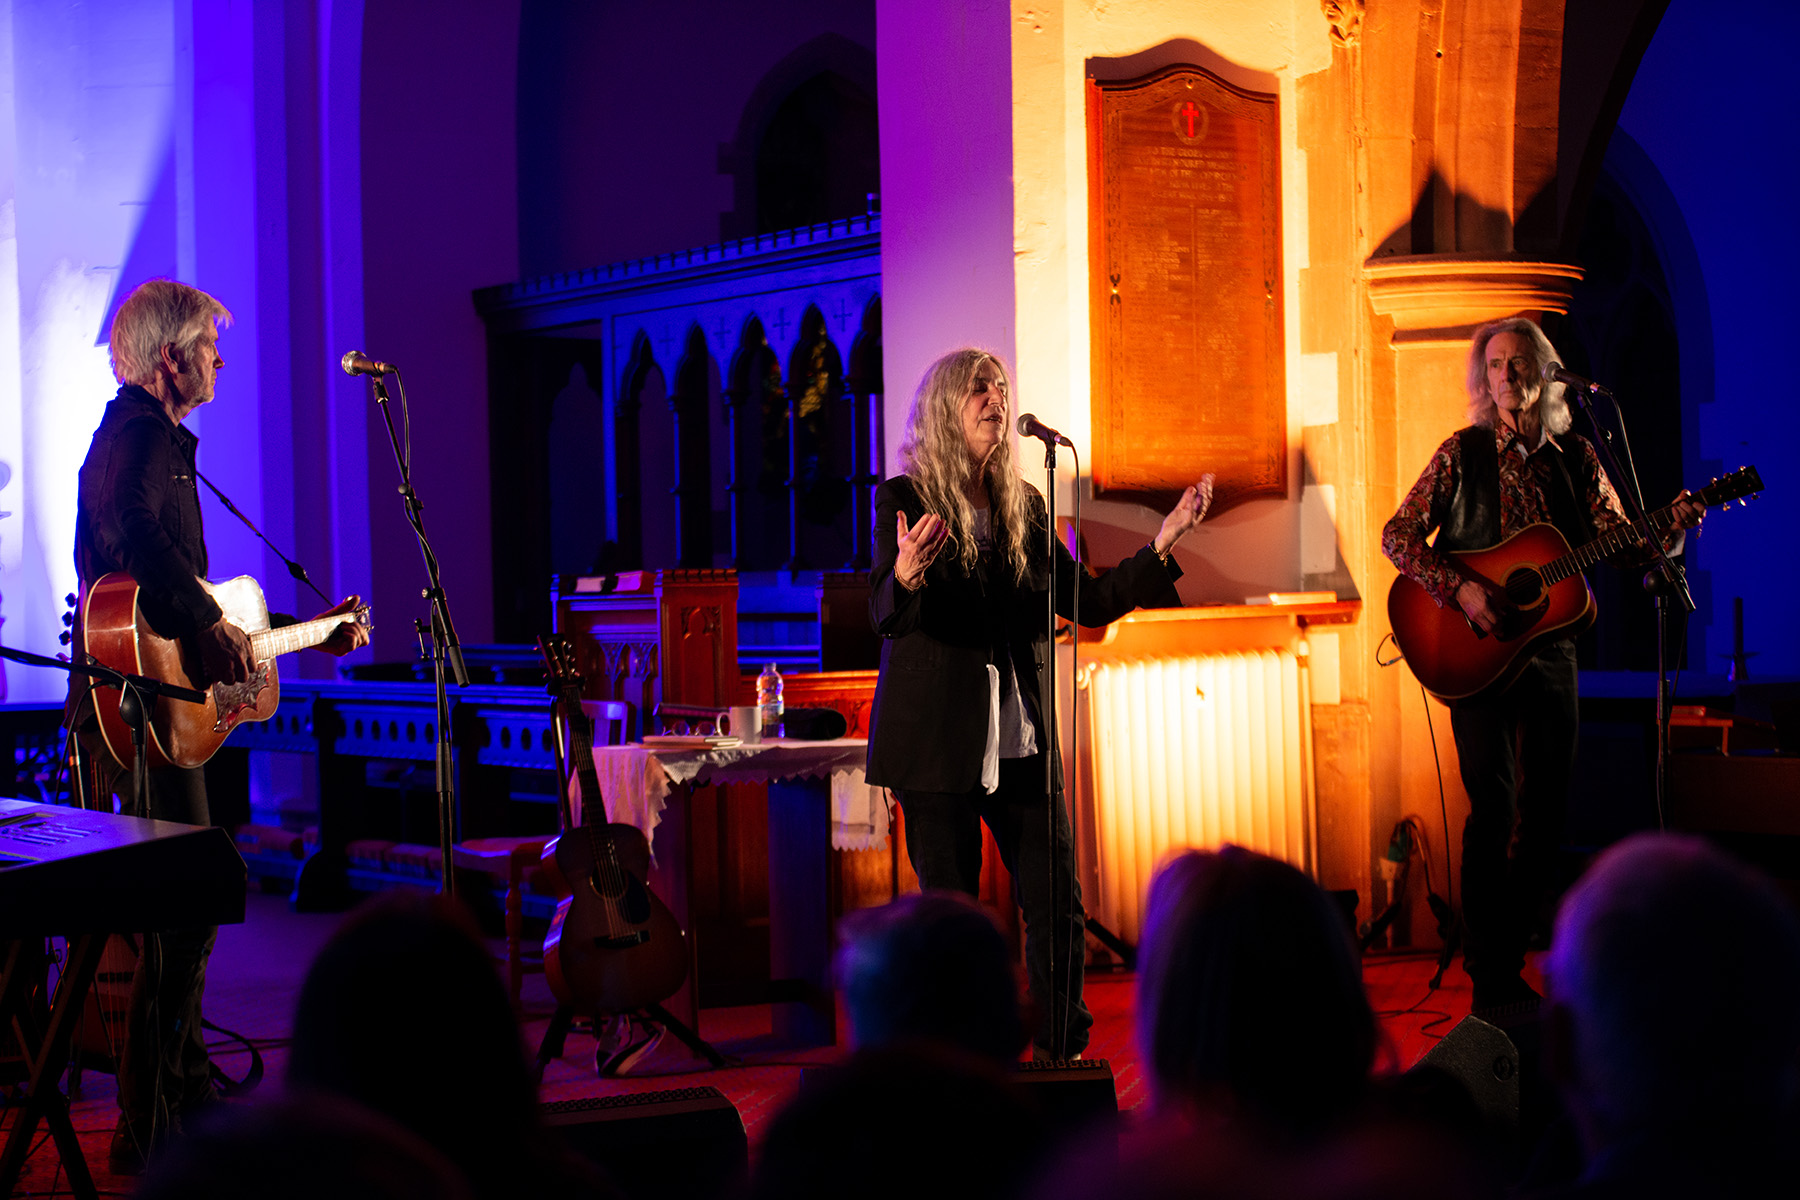 PATTI SMITH ST JOHNS CHURCH